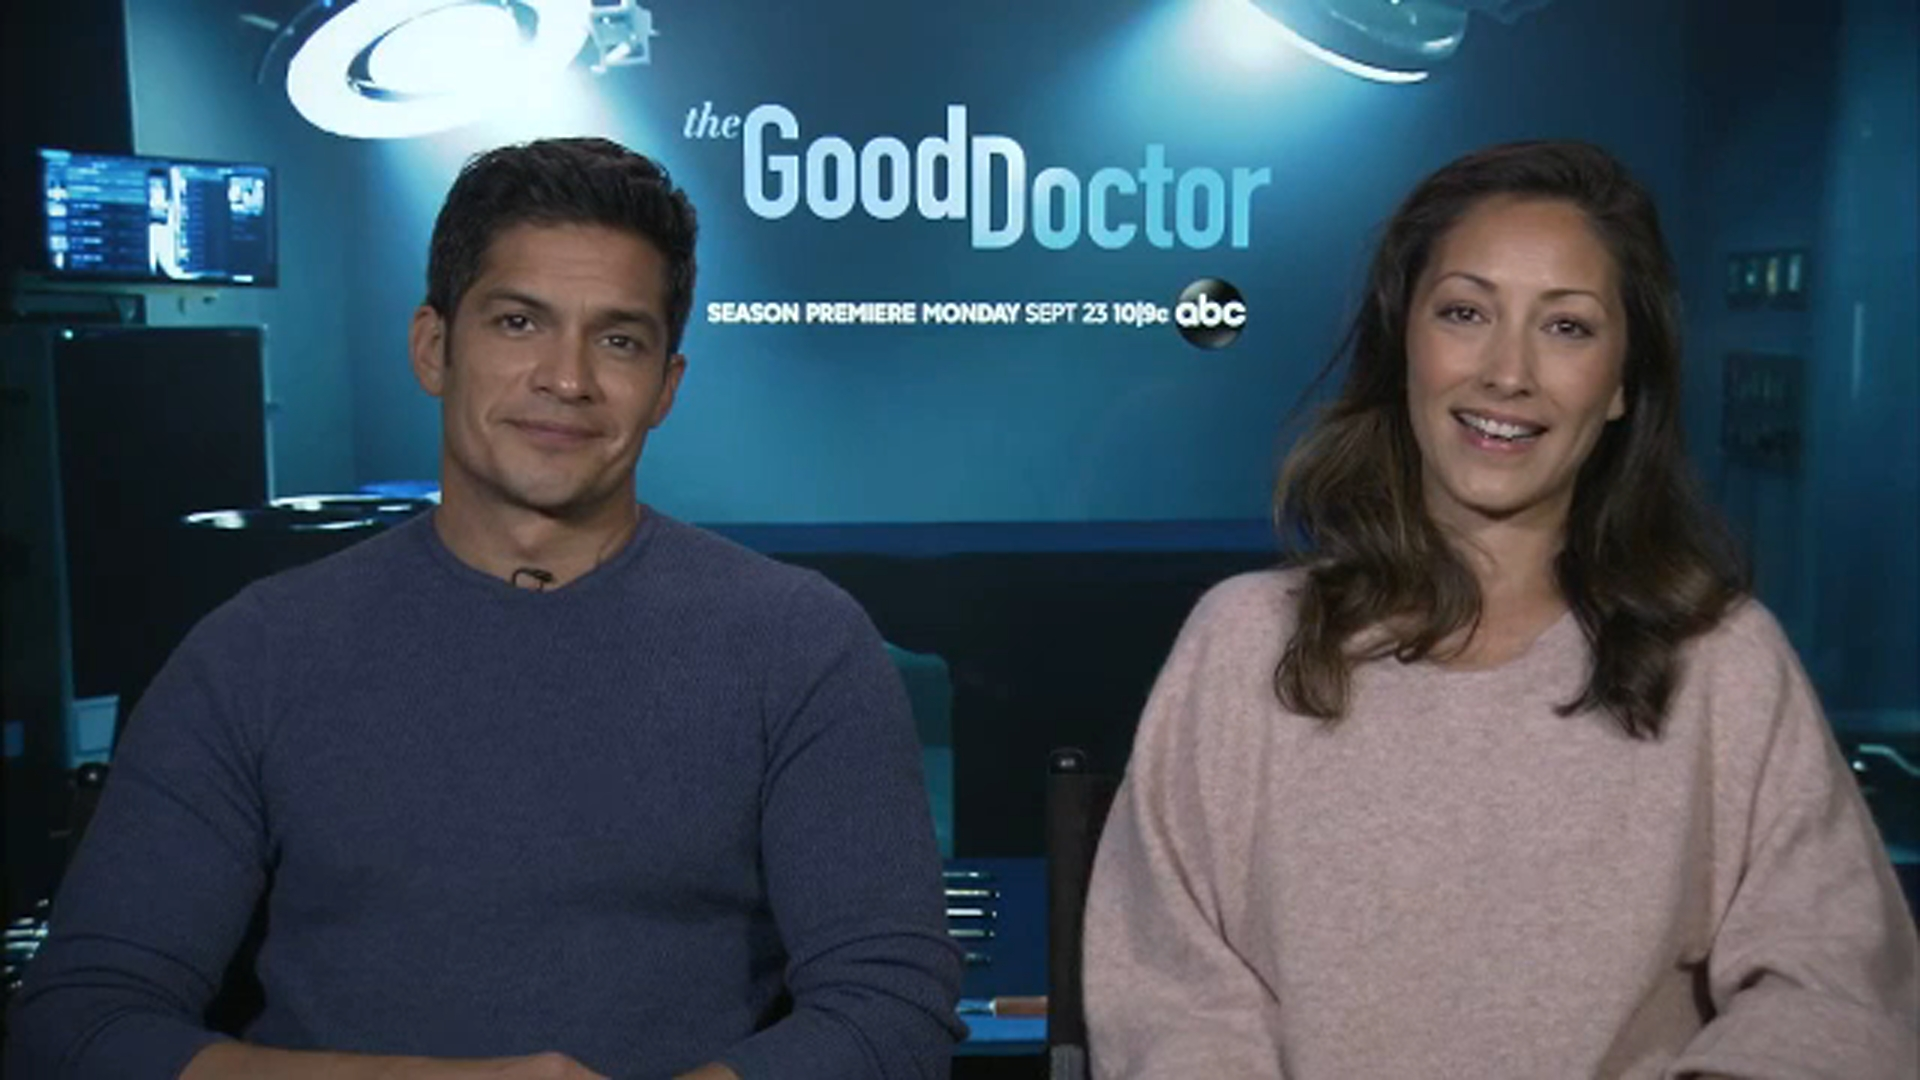 'The Good Doctor' stars Gonzalez, Chang talk about their characters' relationship